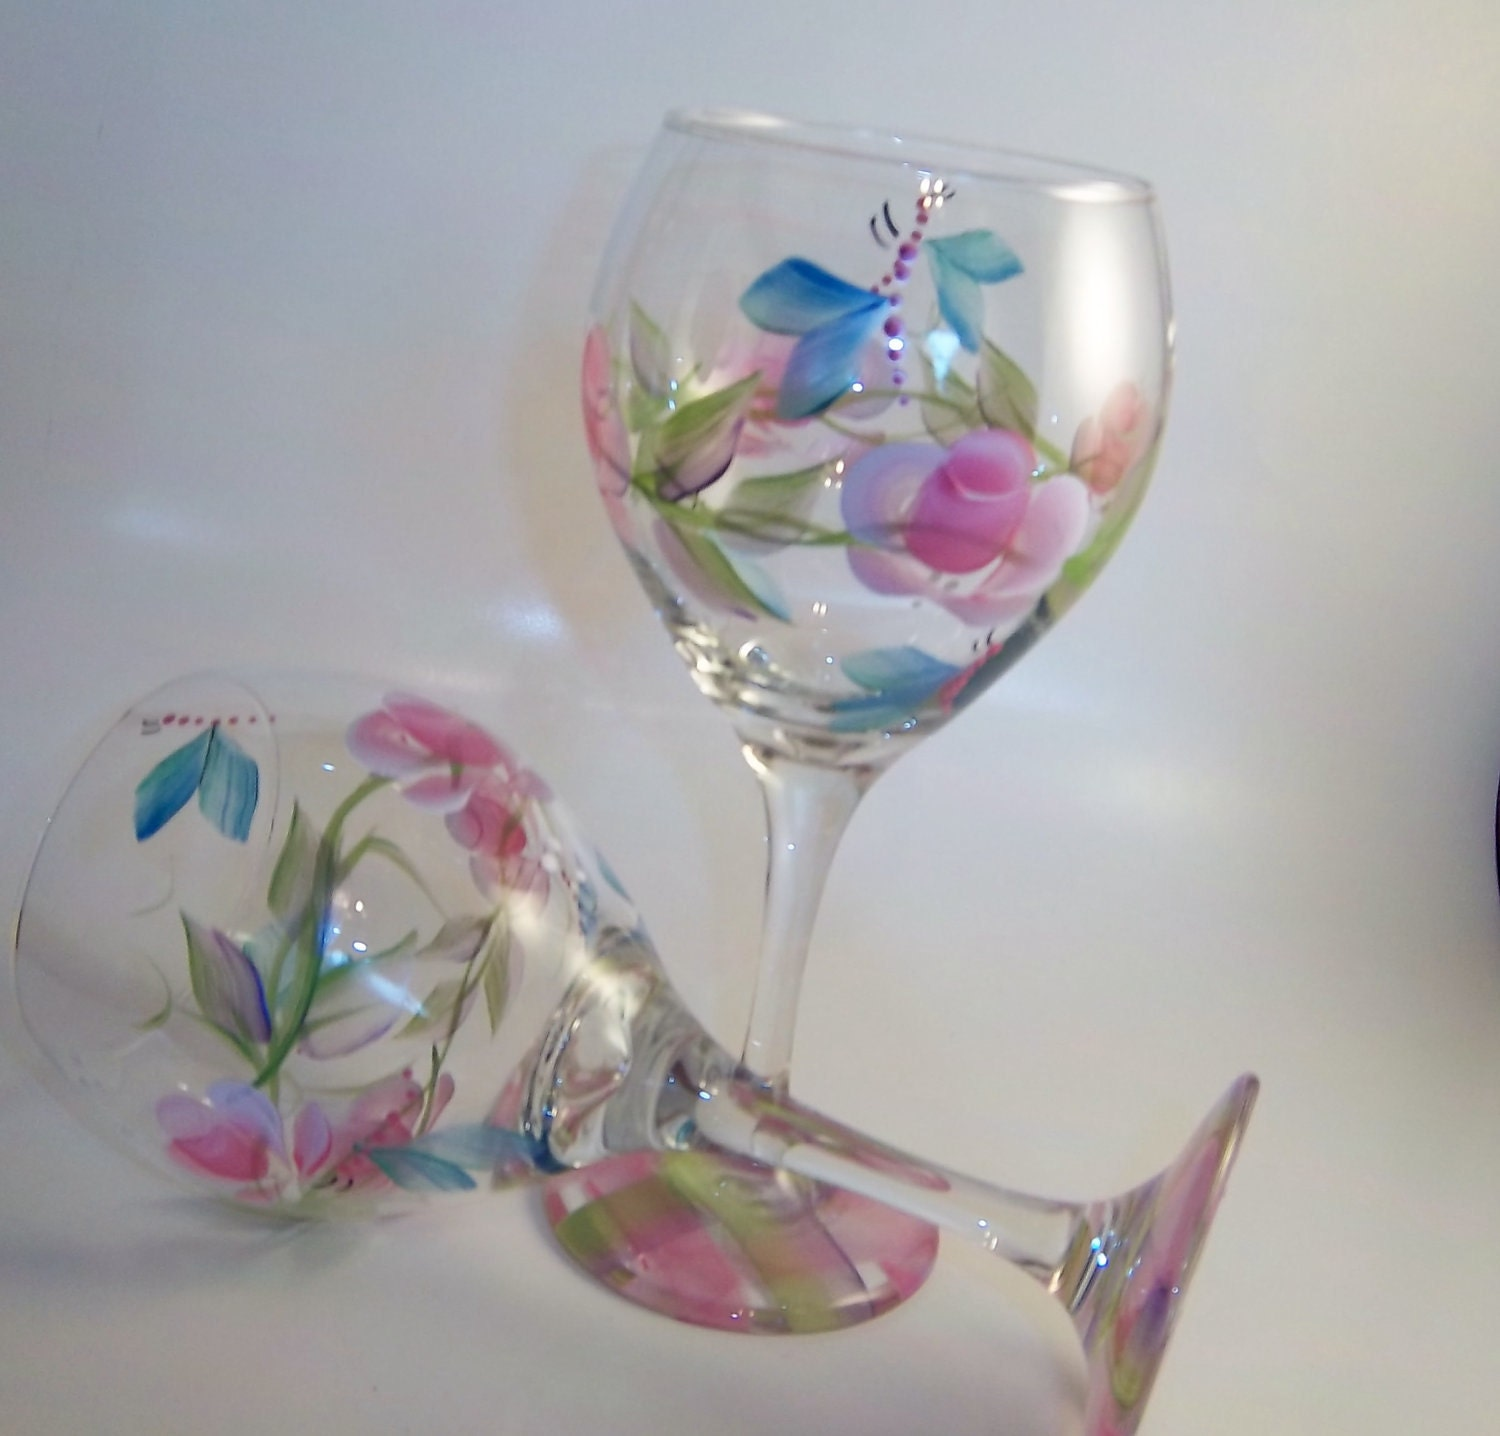 Hand painted wine glasses features rosebuds and butterflies.